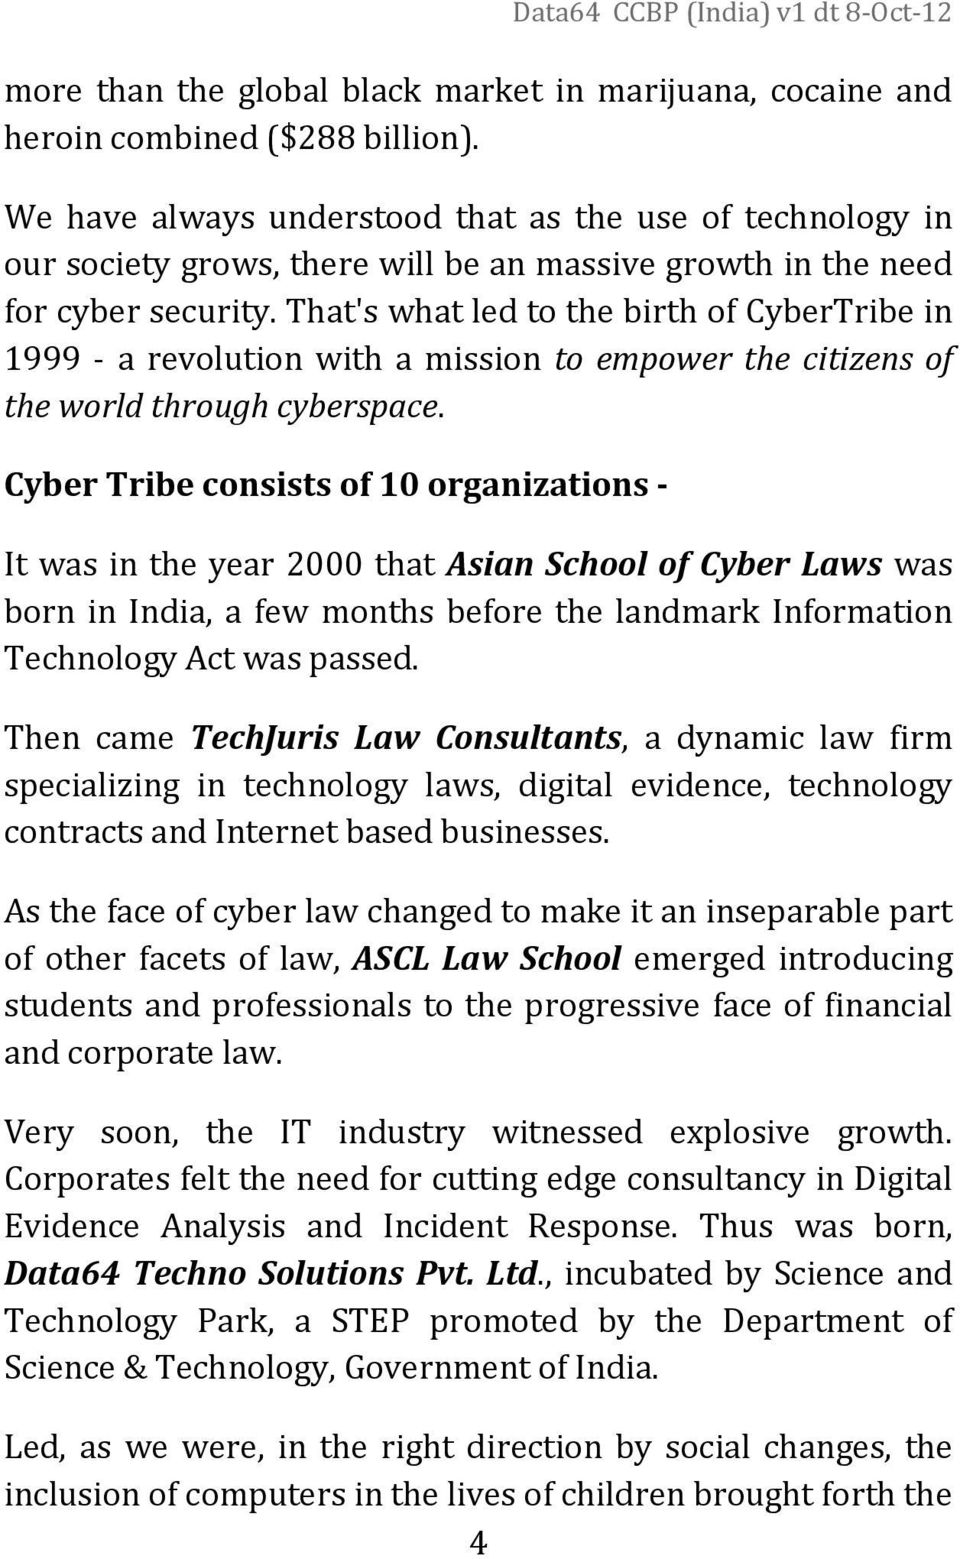 That's what led to the birth of CyberTribe in 1999 - a revolution with a mission to empower the citizens of the world through cyberspace.